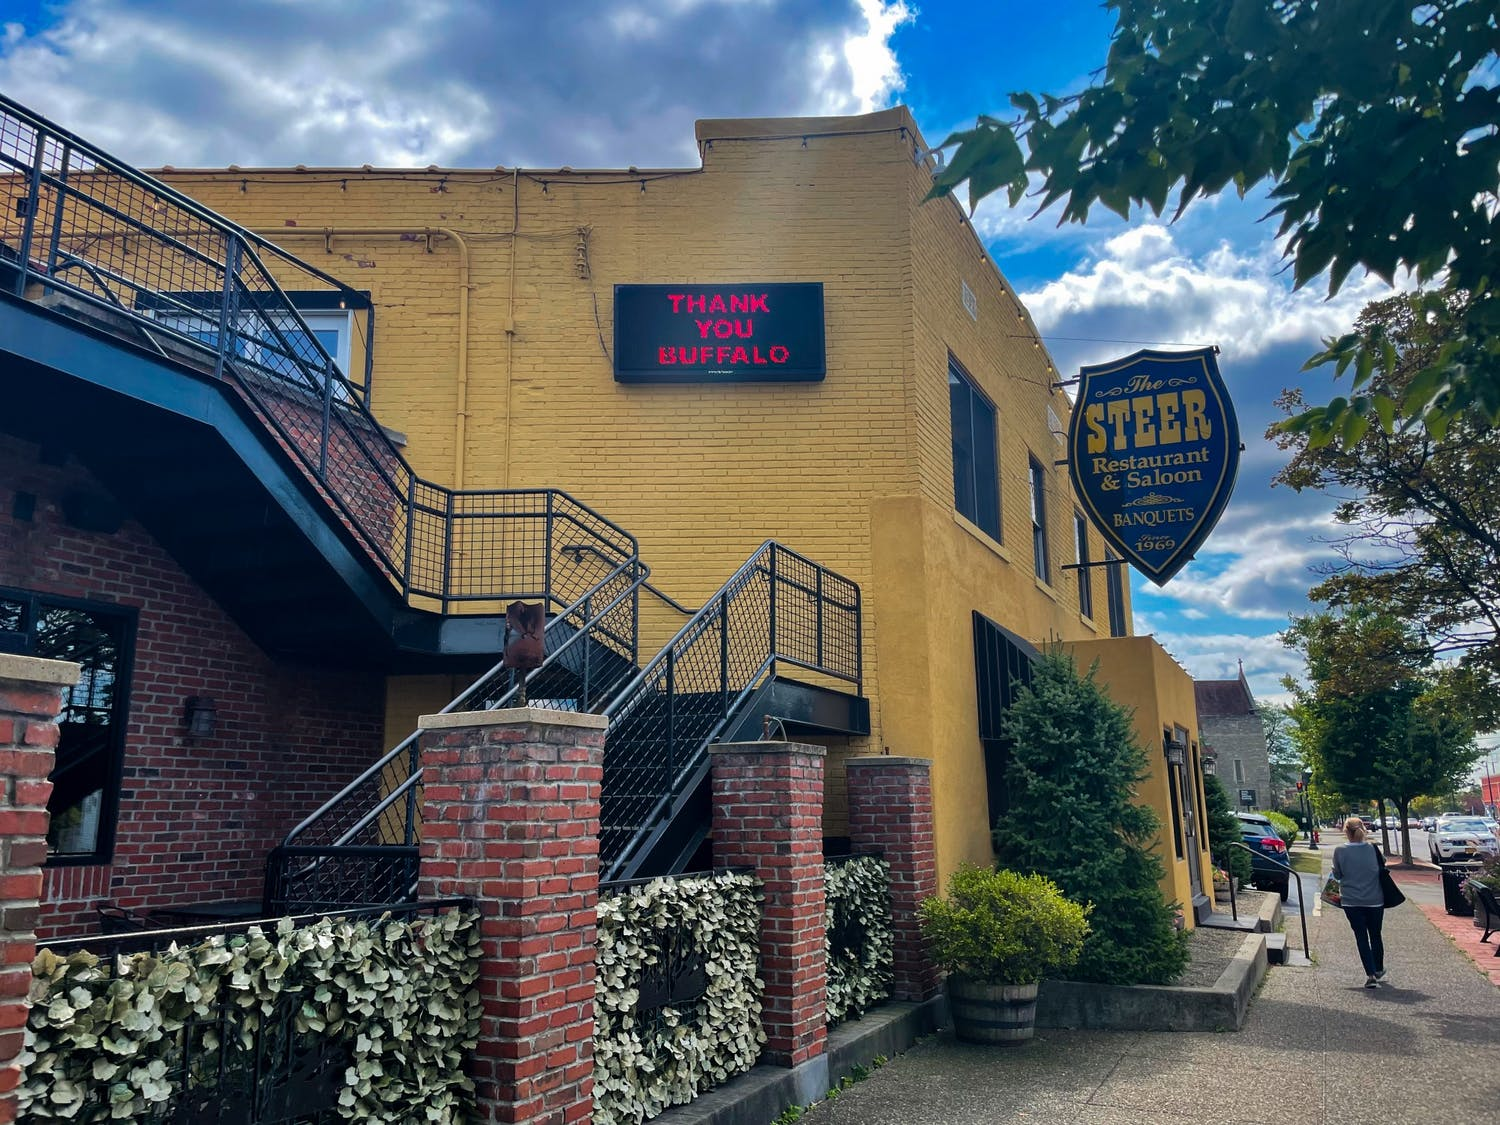 Located in the University Heights neighborhood, The Steer Restaurant & Saloon has long been a favorite of UB students.